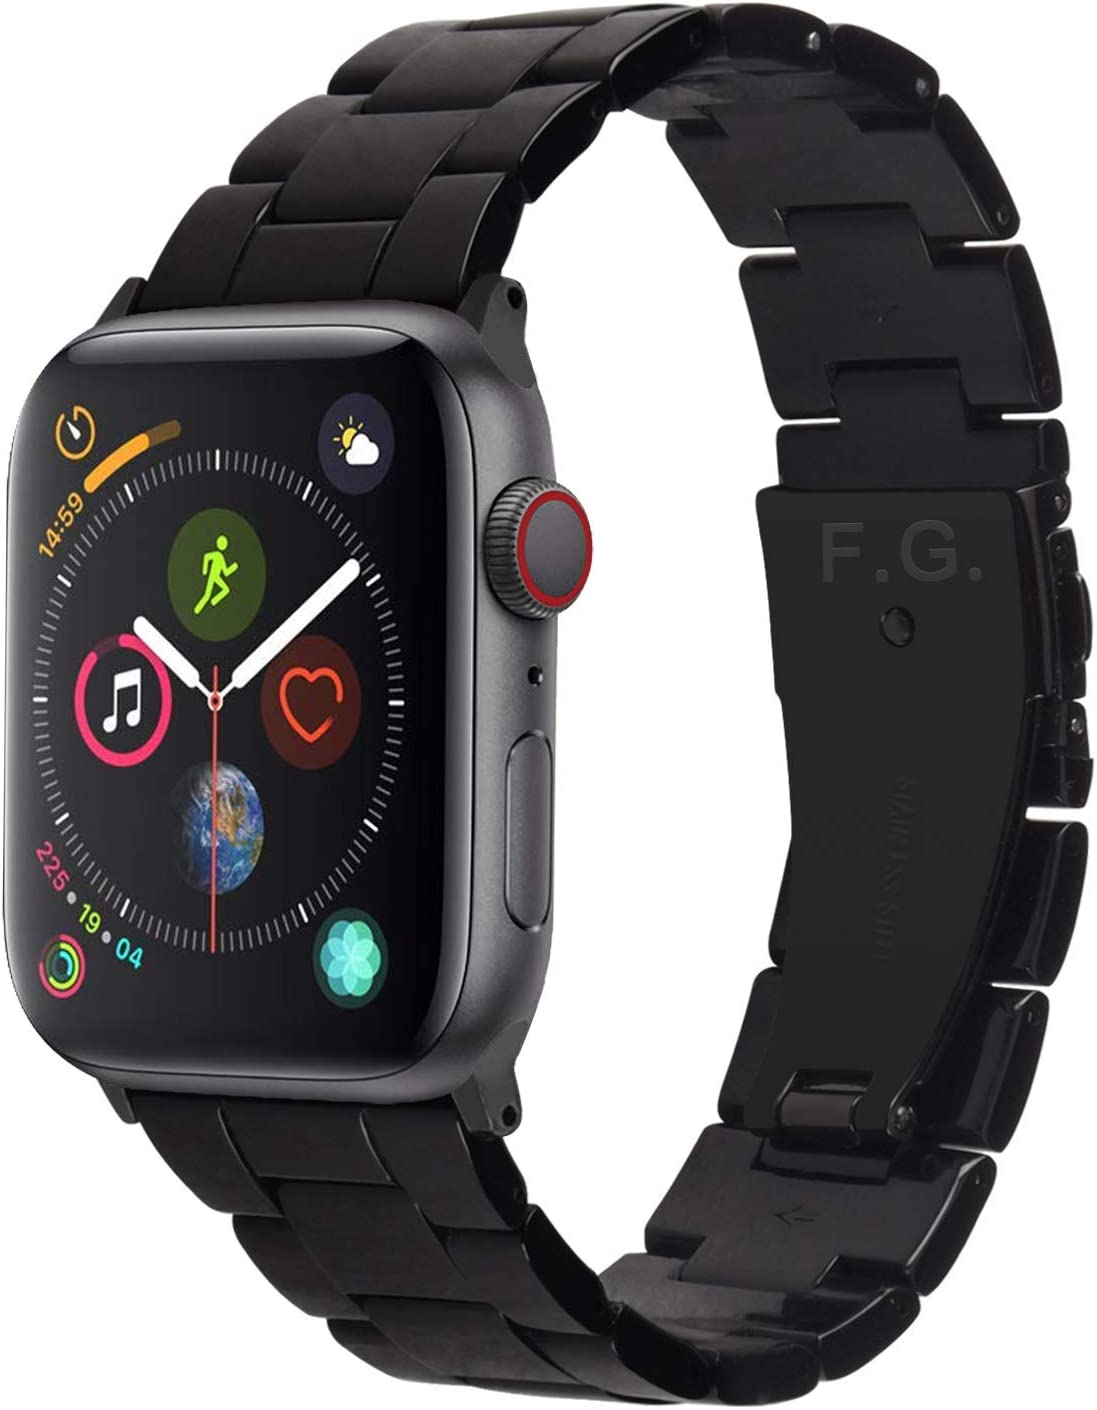 Fullmosa Compatible Apple Watch 38mm/40mm/42mm/44mm, Bright Resin Apple Watch Band for iWatch SE & Series 6/5/4/3/2/1, Hermes, Nike+, Edition, Sport, Black (Black Hardware) 38mm